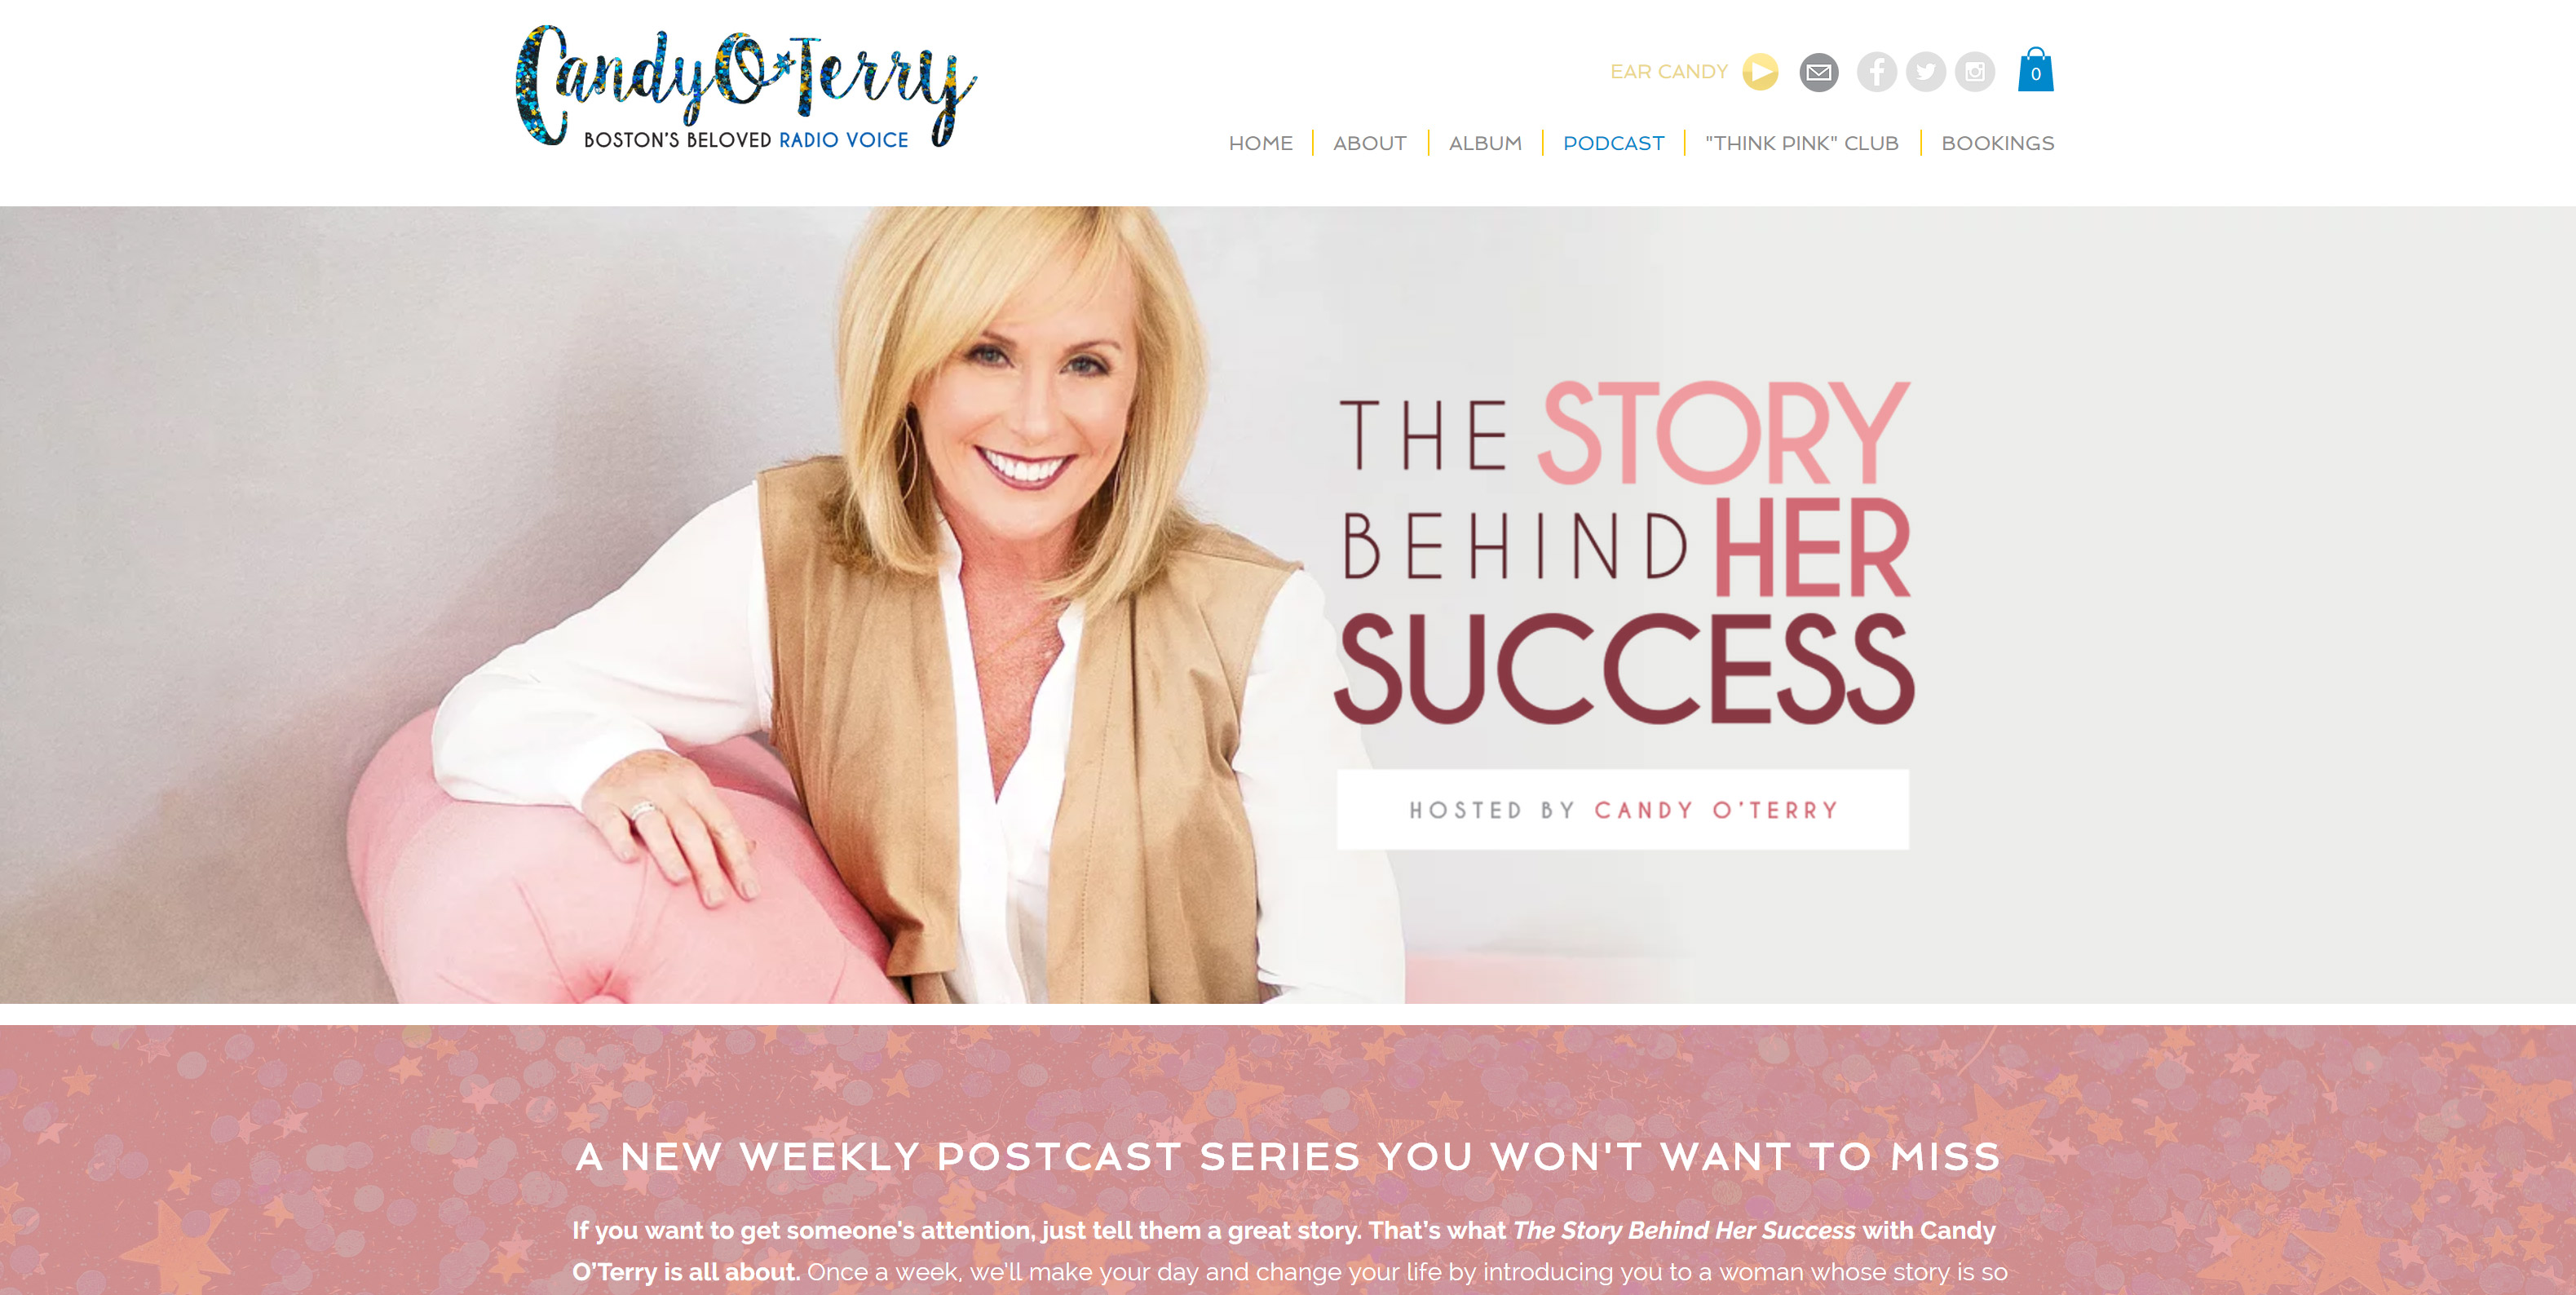 Sarah-Cas-Branding-and-Design-Website-Design-Candy-Oterry-16